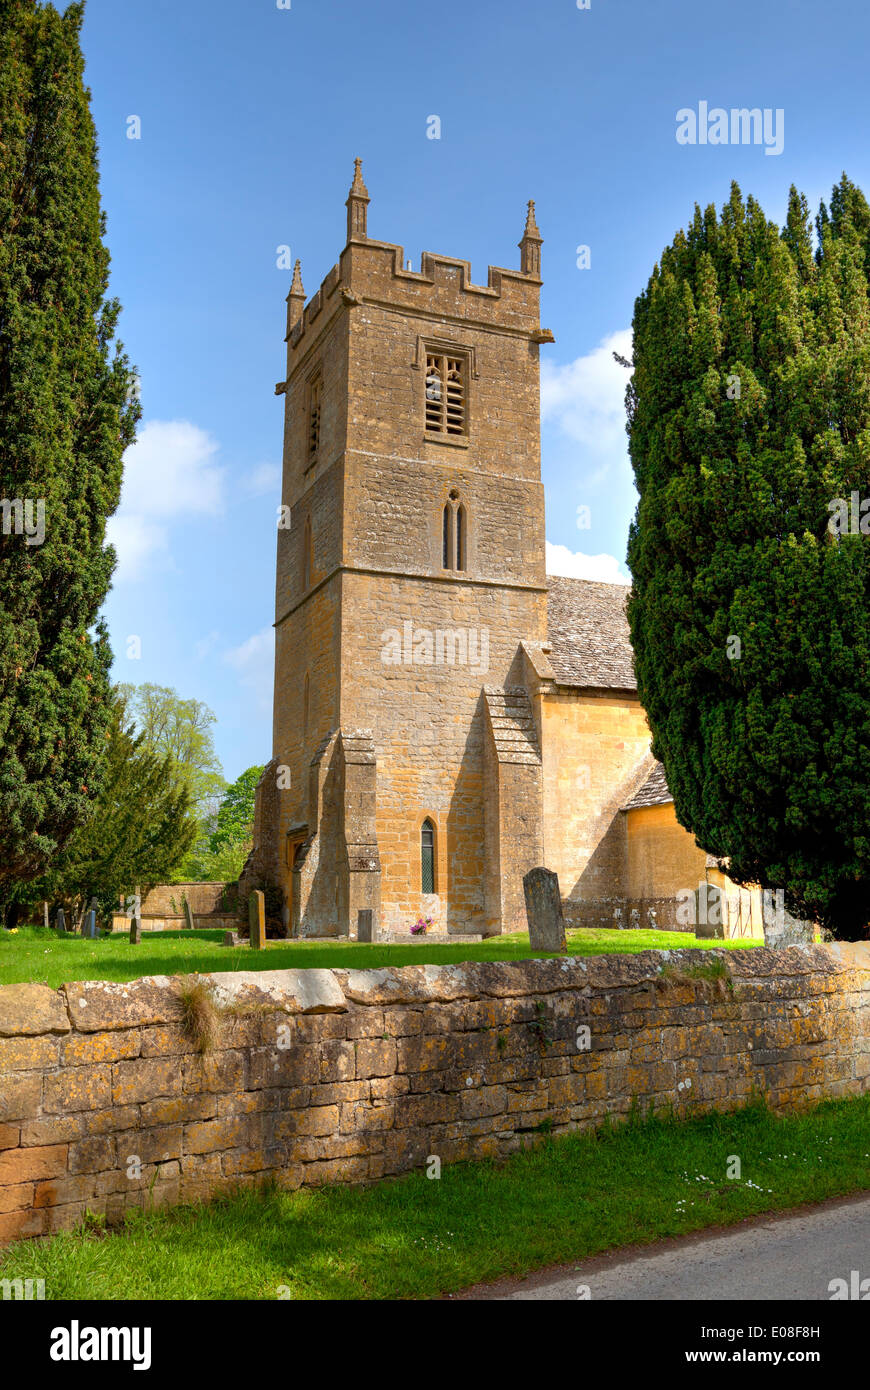 St Peter church, Stanway, Gloucestershire, England. Stock Photo